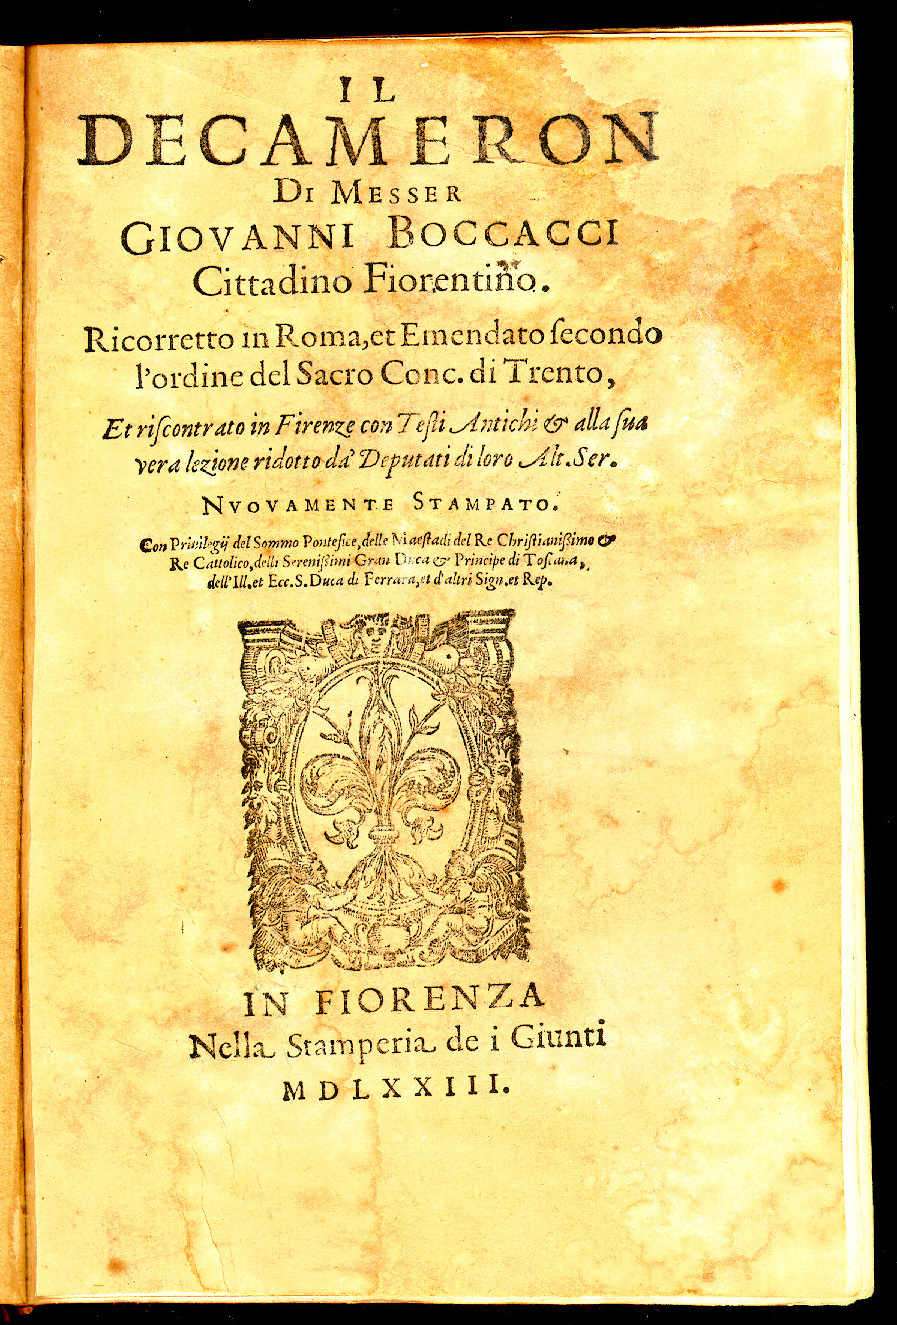 an analysis of the decameron by giovanni boccaccio Let me begin this analysis by qualifying my claim that boccaccio differs from  petrarch in  understand himself better): giovanni boccaccio: decameron, 16.